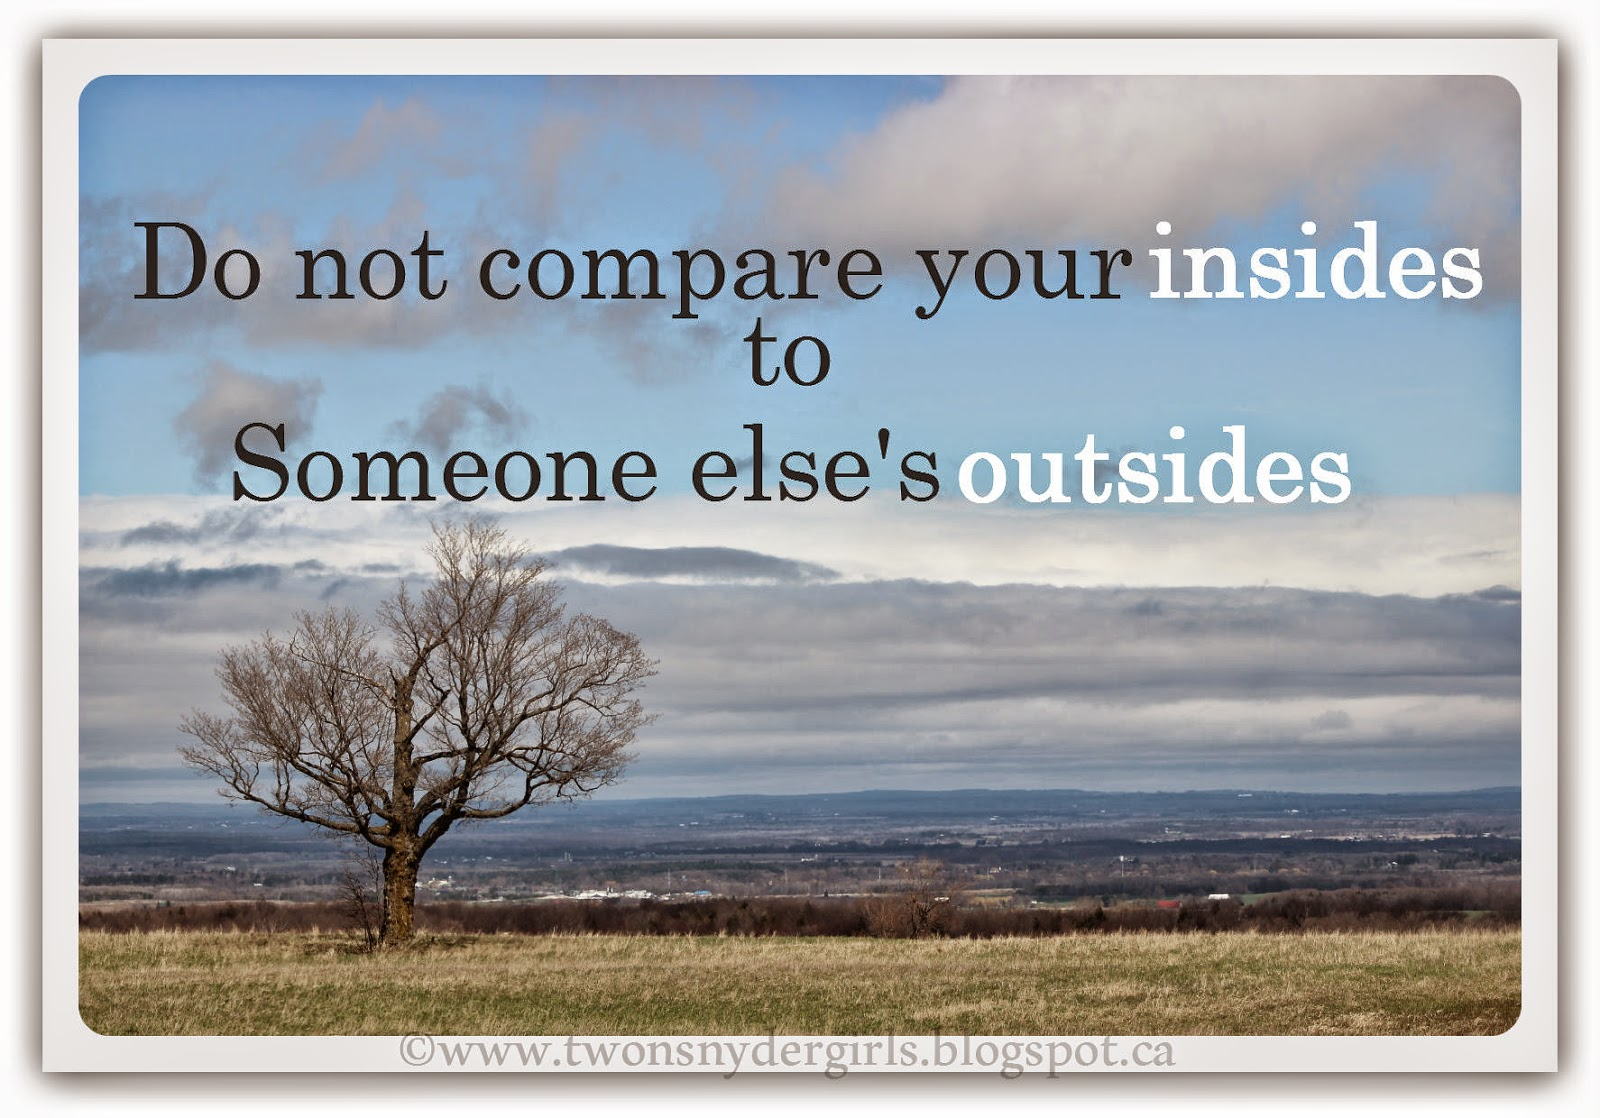 Do not compare your insides to someone else's outsides